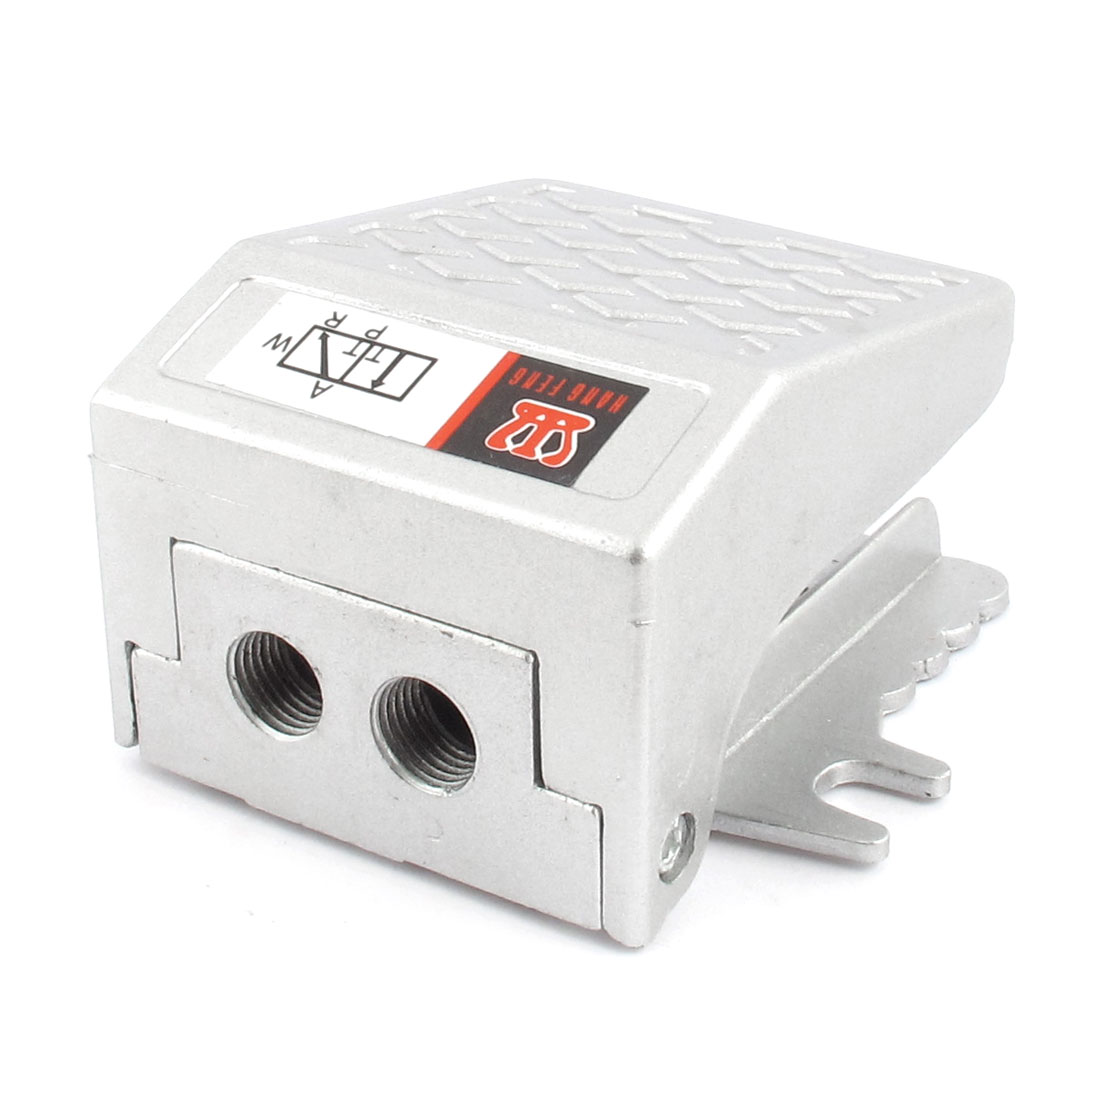 Unique Bargains FV-02 Alloy 1/4BSP Threaded Air Pneumatic Pedal Valve Foot Switch Silver Tone - image 3 of 3